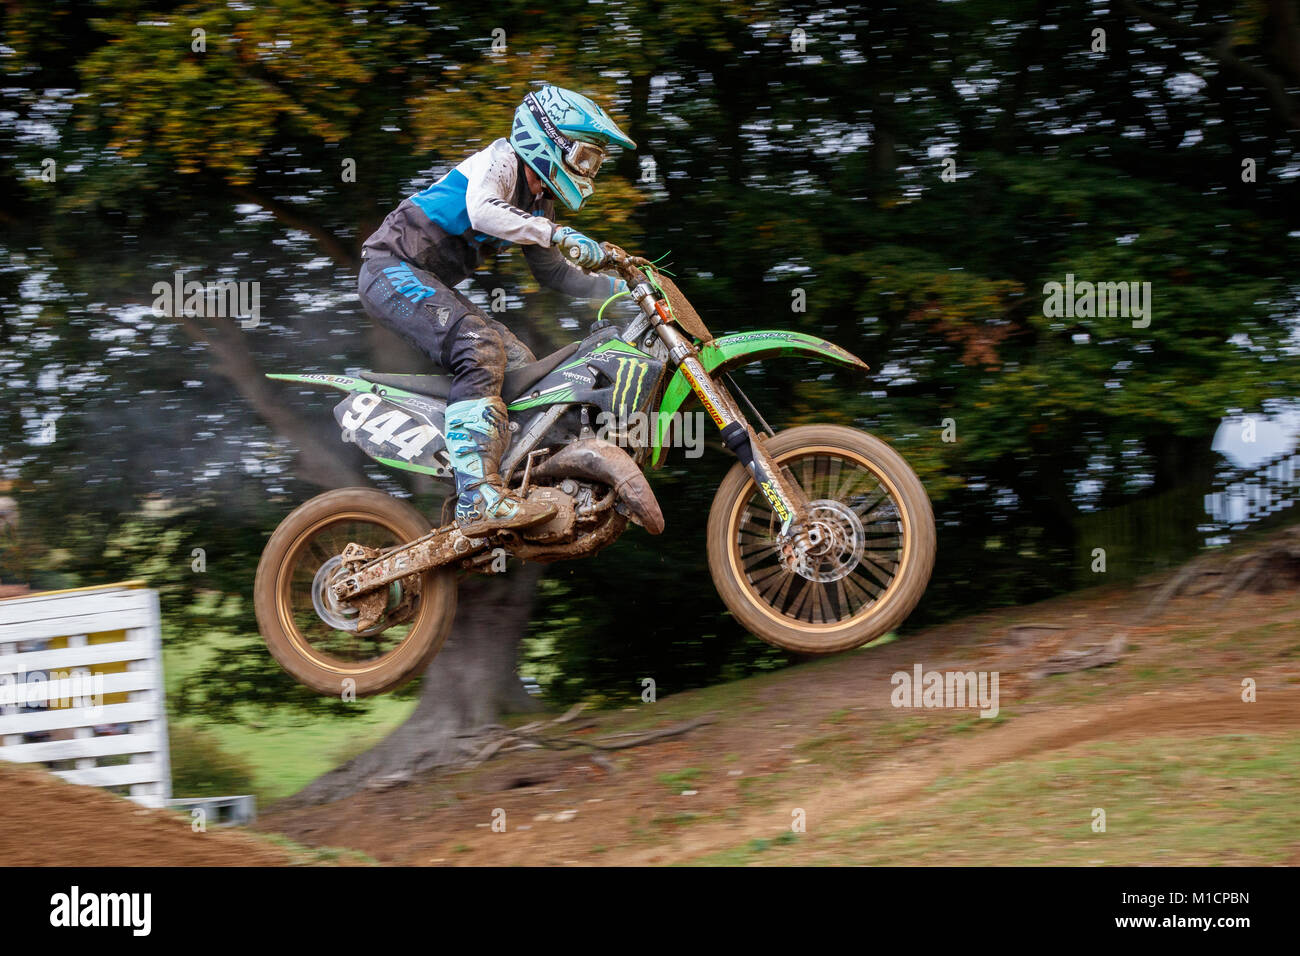 Tyrone Tugwell on the Eastwood Racing / Wiseco Honda 450 at the NGR & ACU Eastern EVO Motocross Championships, - Stock Image